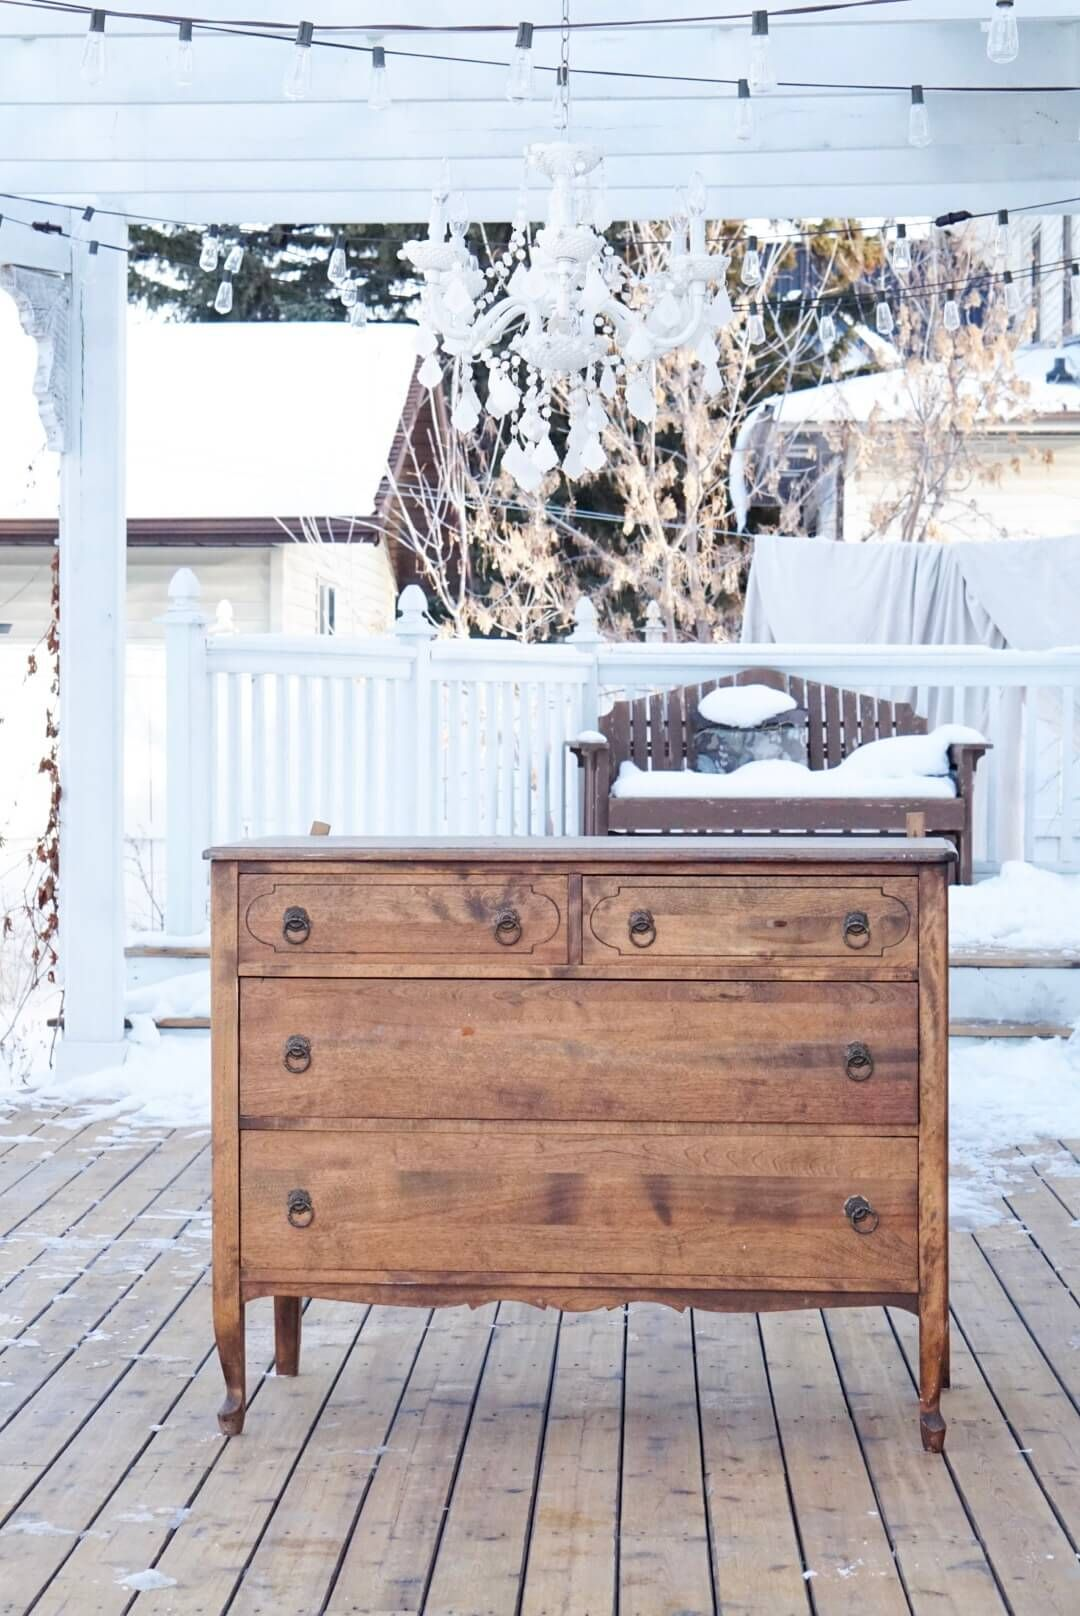 Furniture Refinishing 6 Steps To A Natural Or Raw Wood Finish Vintage Society Co In 2020 Raw Wood Furniture Furniture Makeover Refinishing Furniture